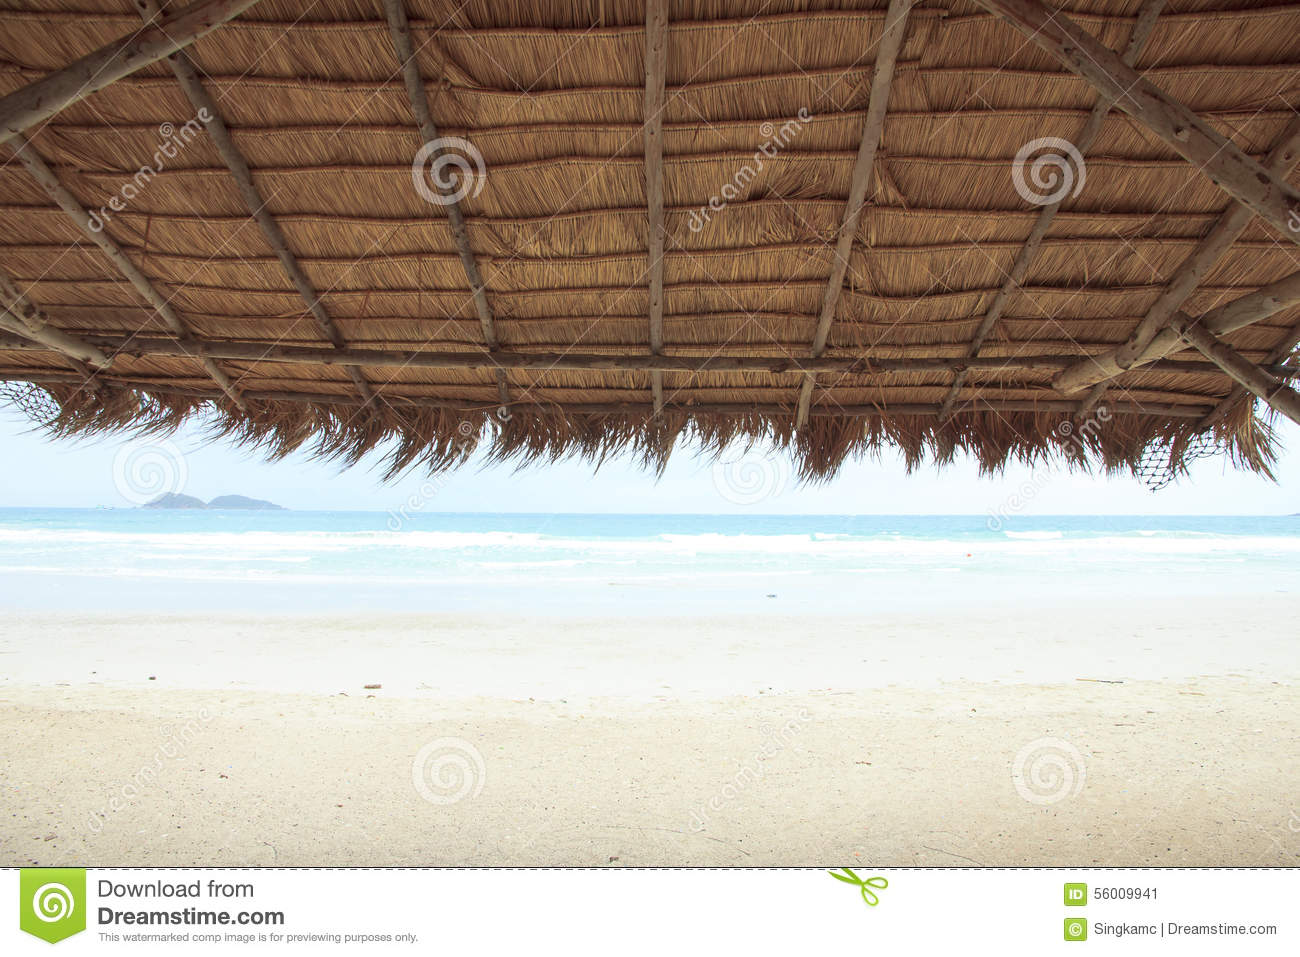 Stock Photo - Thai texture of roof in Thai pavillion flok style